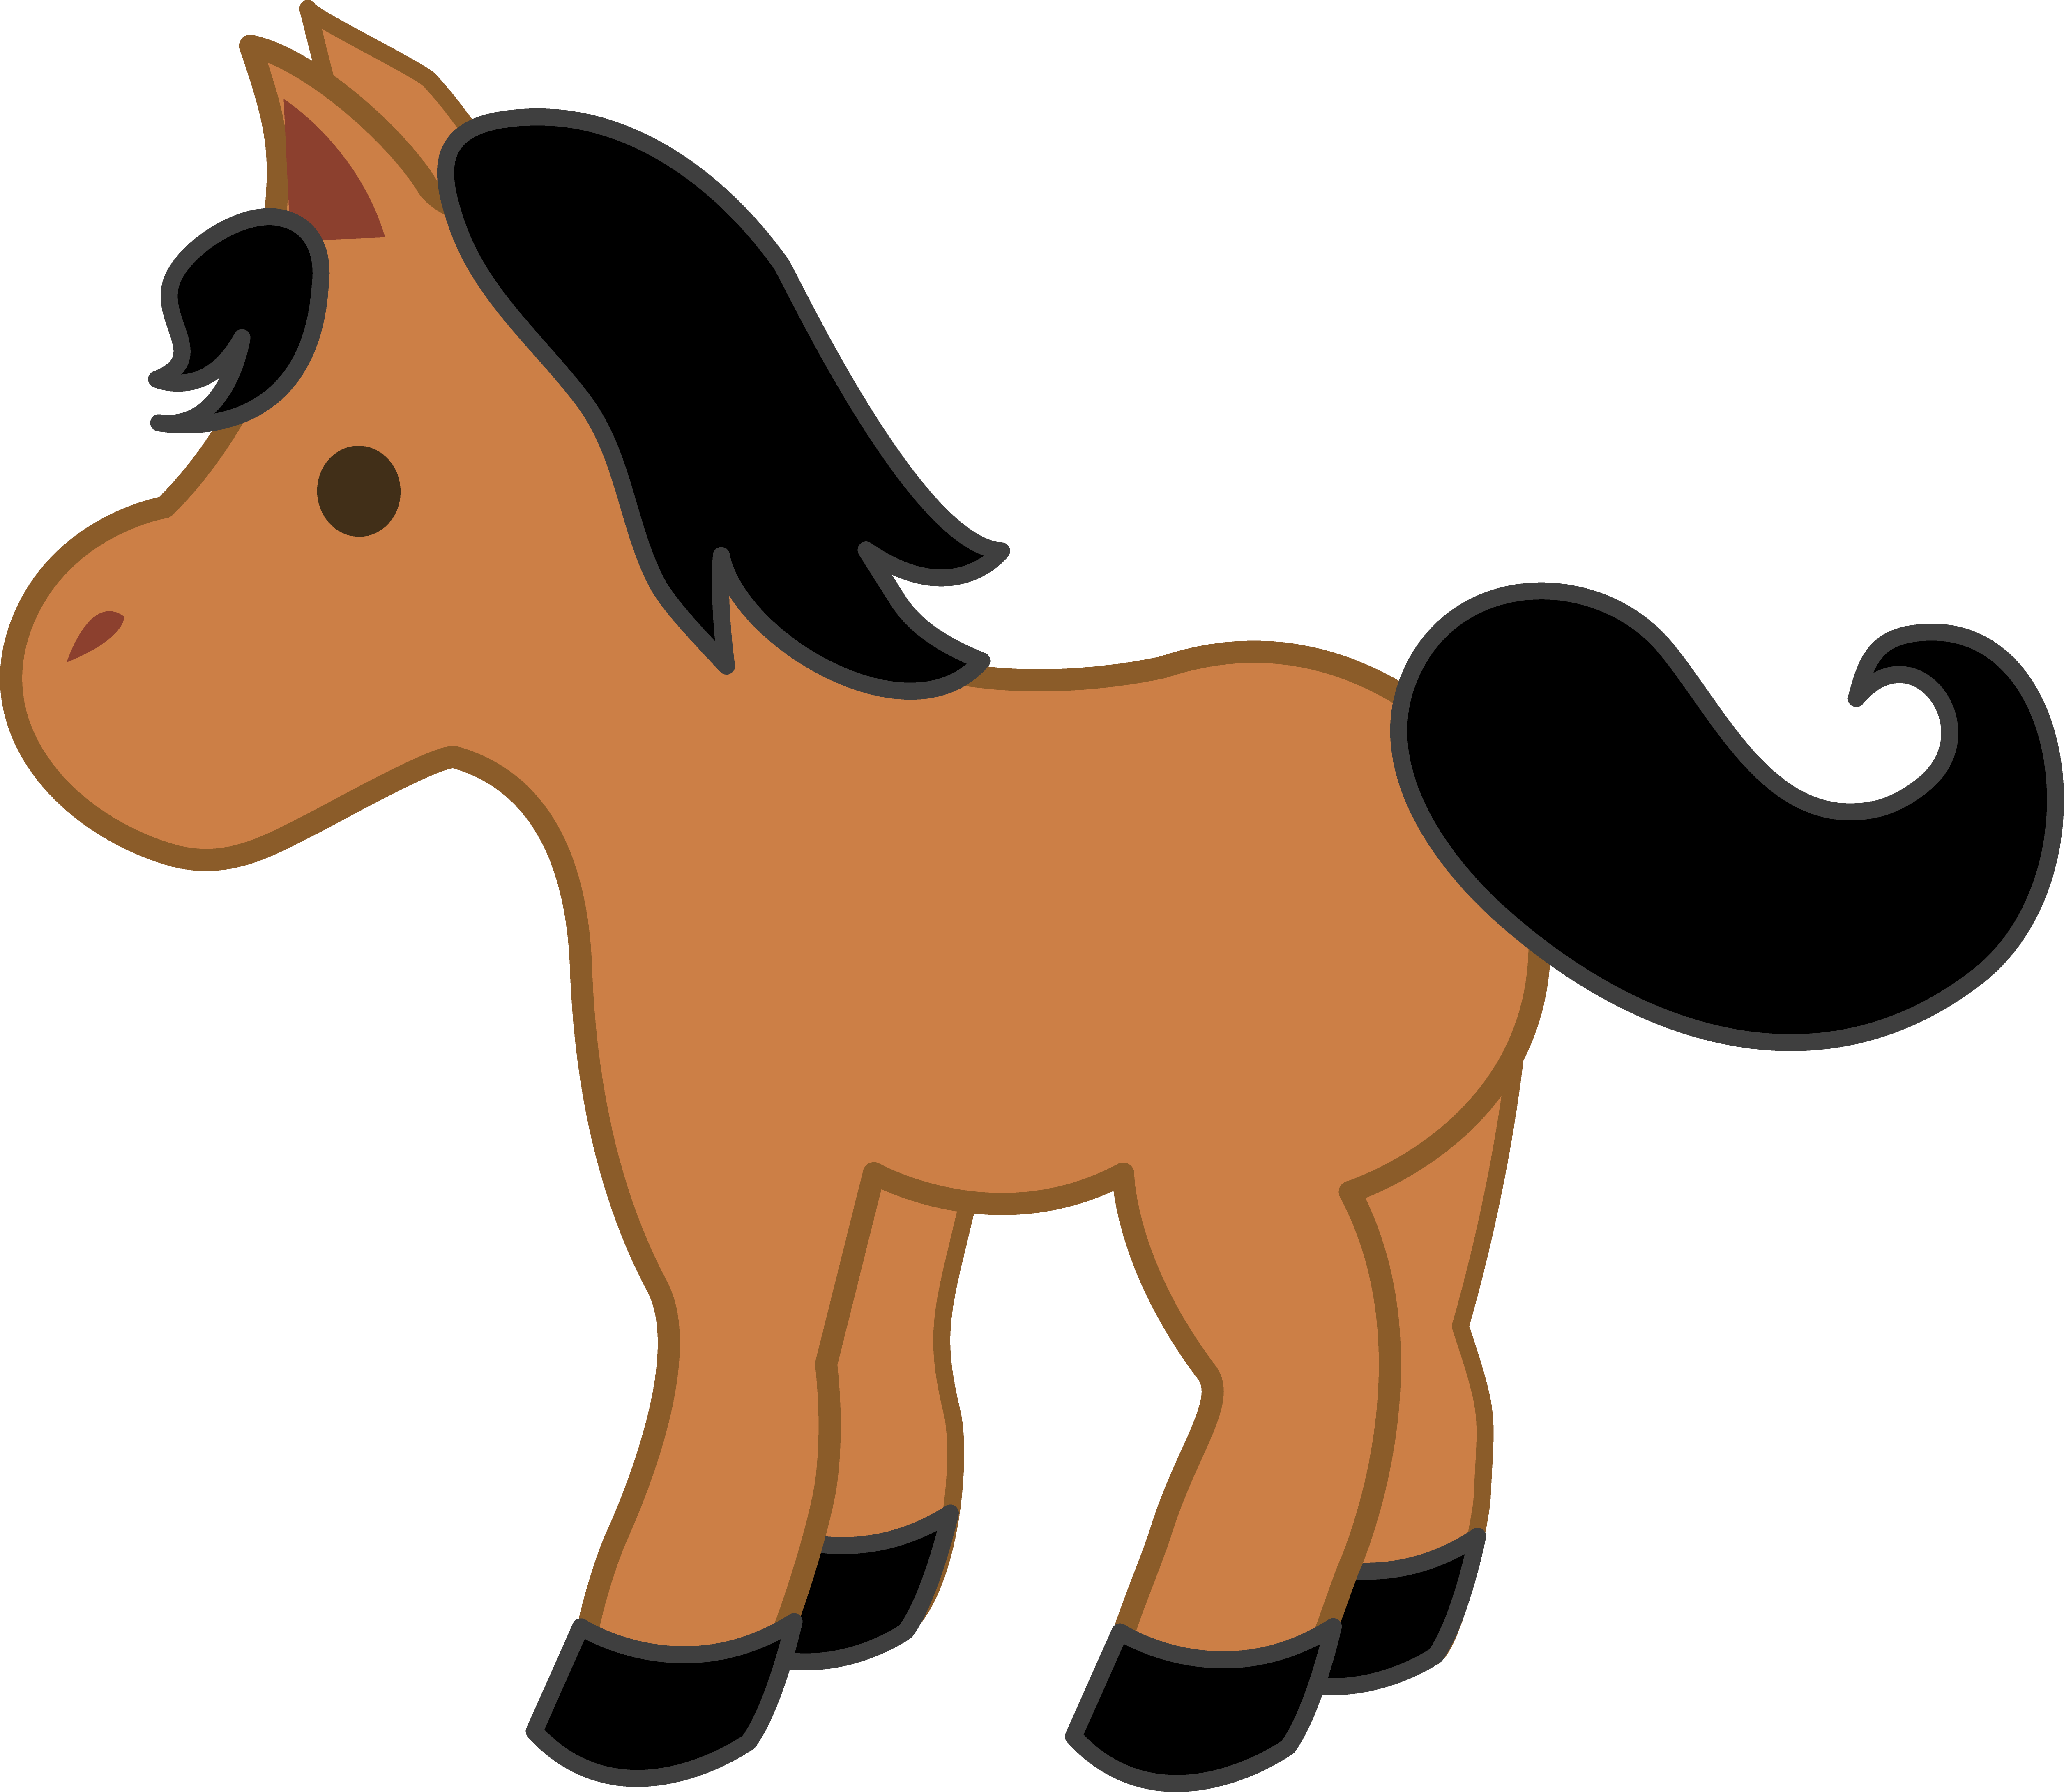 Cute Horse Clipart Black And White | Clipart Panda - Free ...